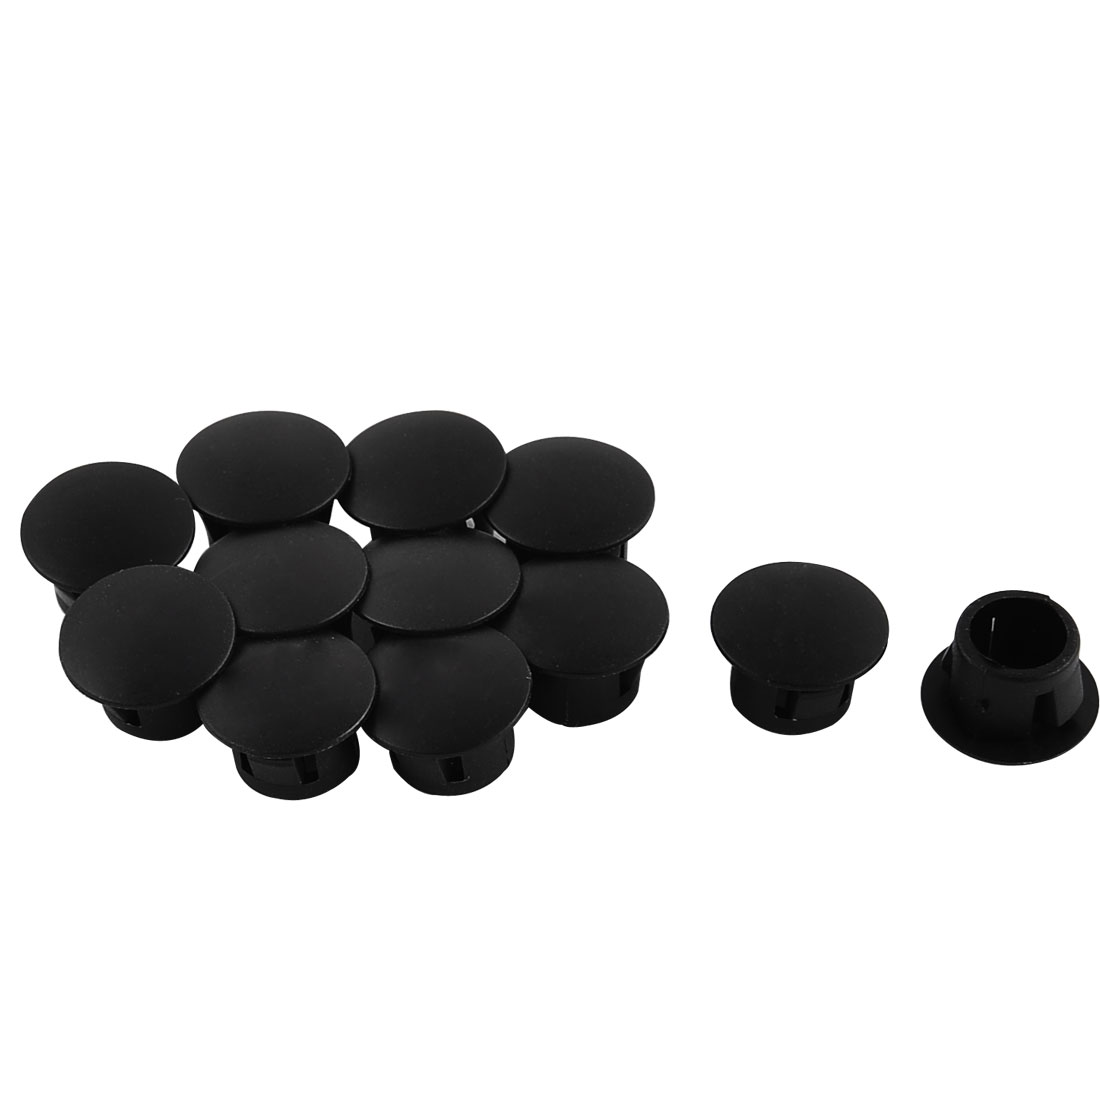 Door Window Mounting Locking Hole Plugs Button Cover 8mm Diameter 12pcs